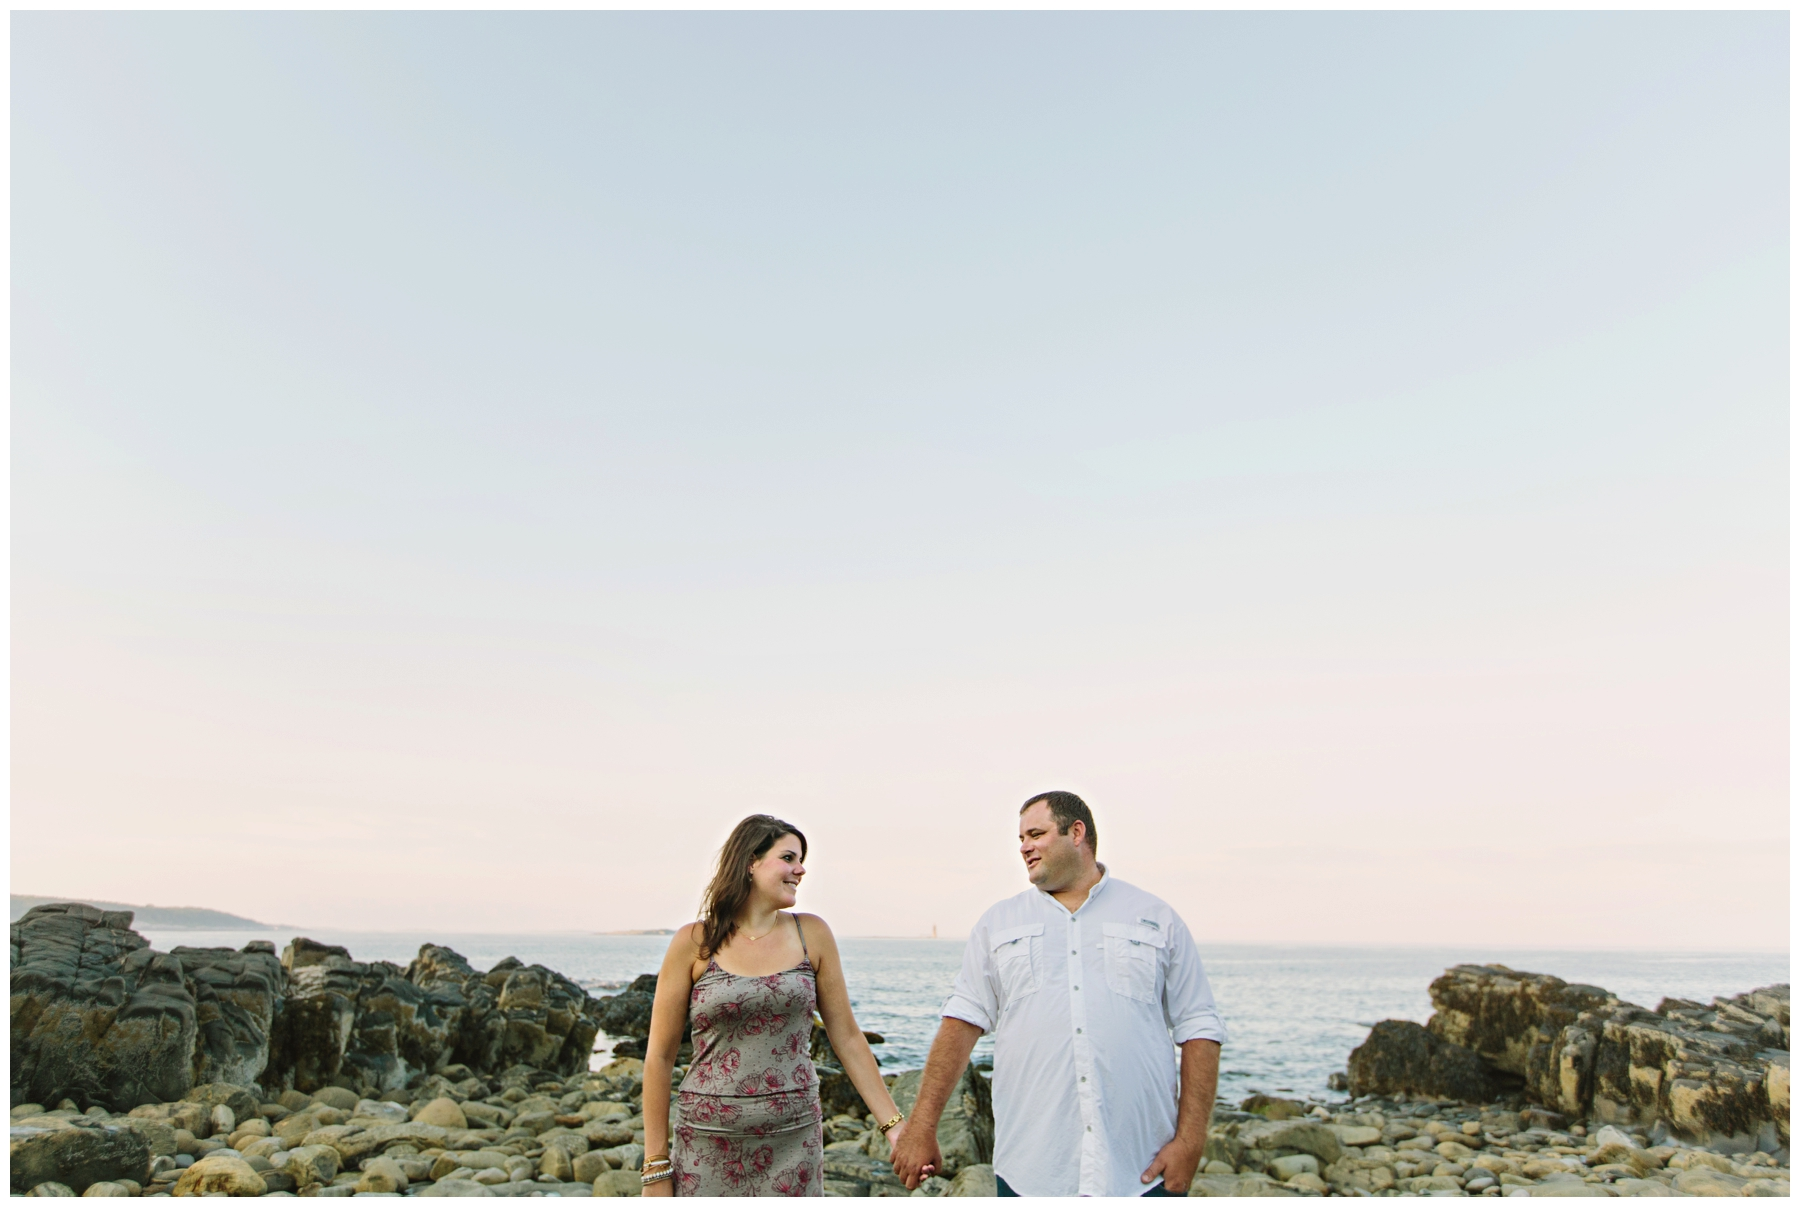 Maine_Photographer_Engagements_FortWilliams_PortlandHeadLight_lighthouse_coastal_seaside-008